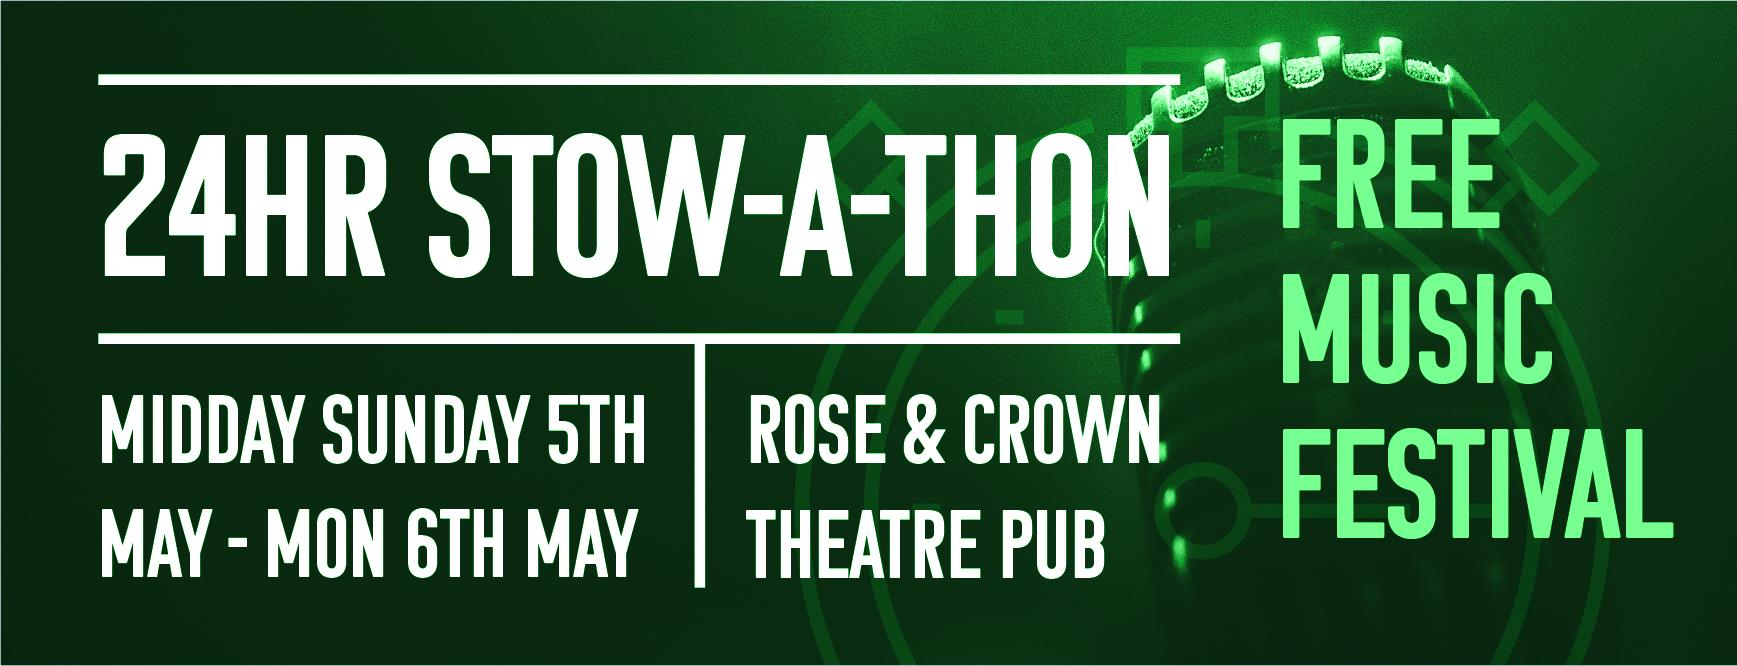 Stow-a-thon 2019